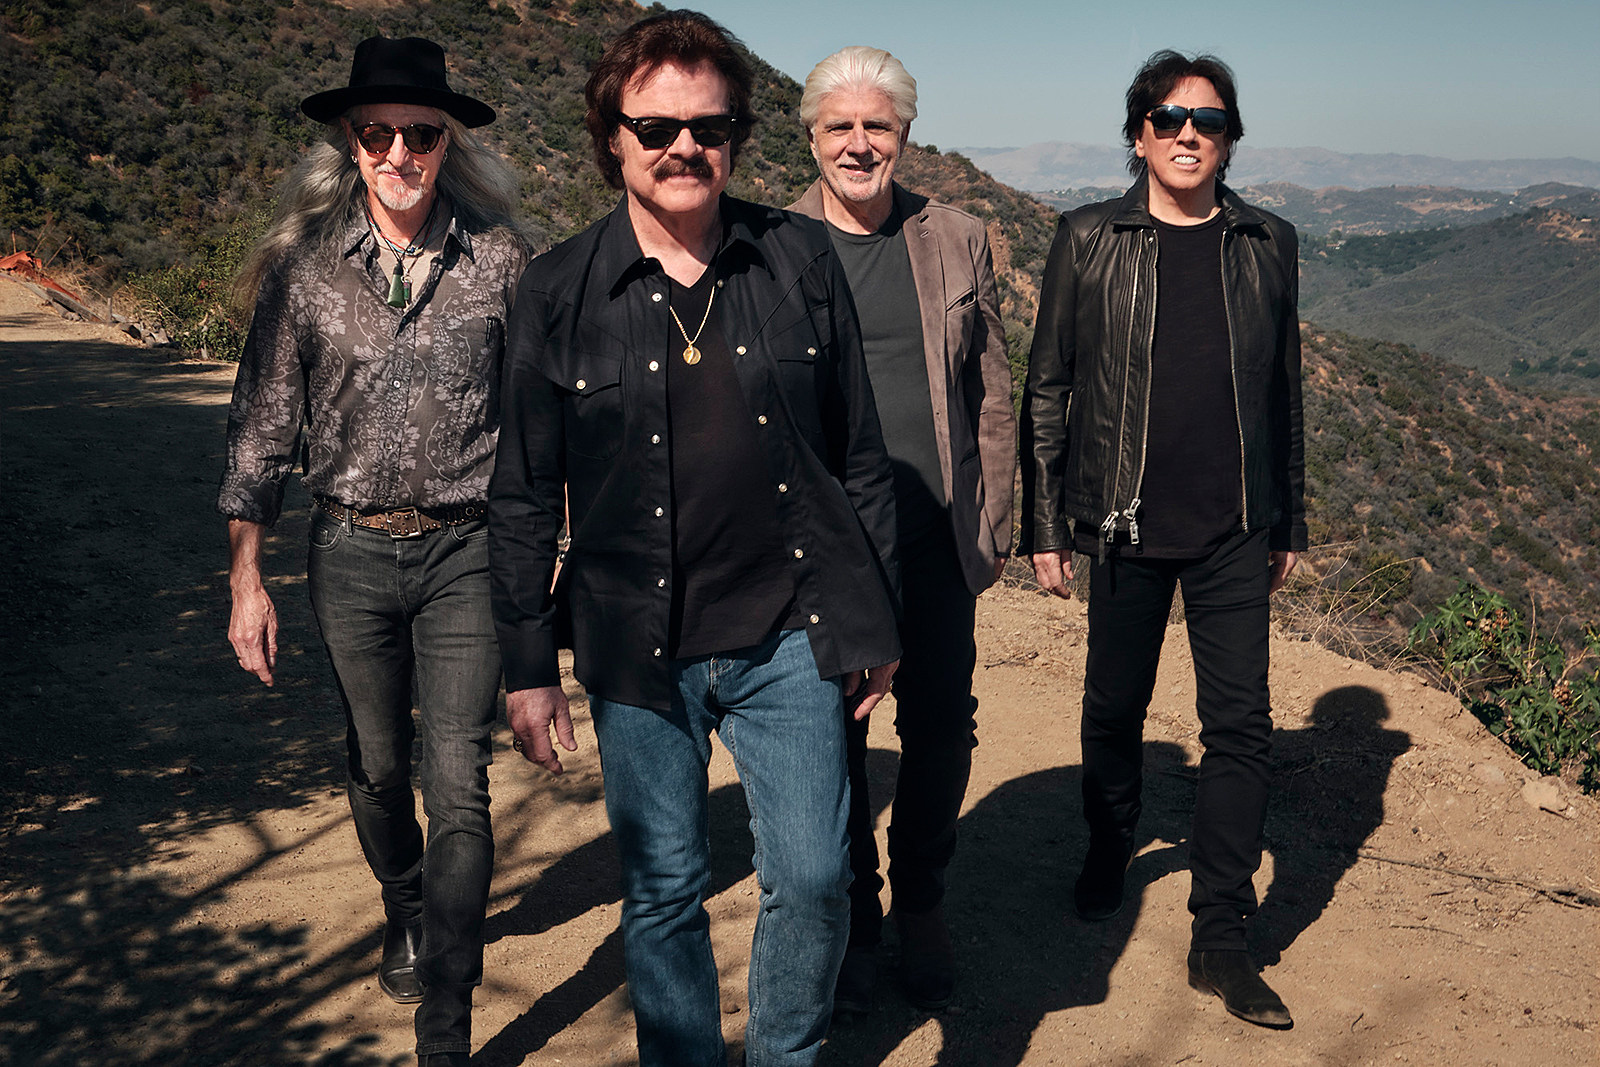 Behind the Scenes at the Doobie Brothers' Reunion Photo Shoot